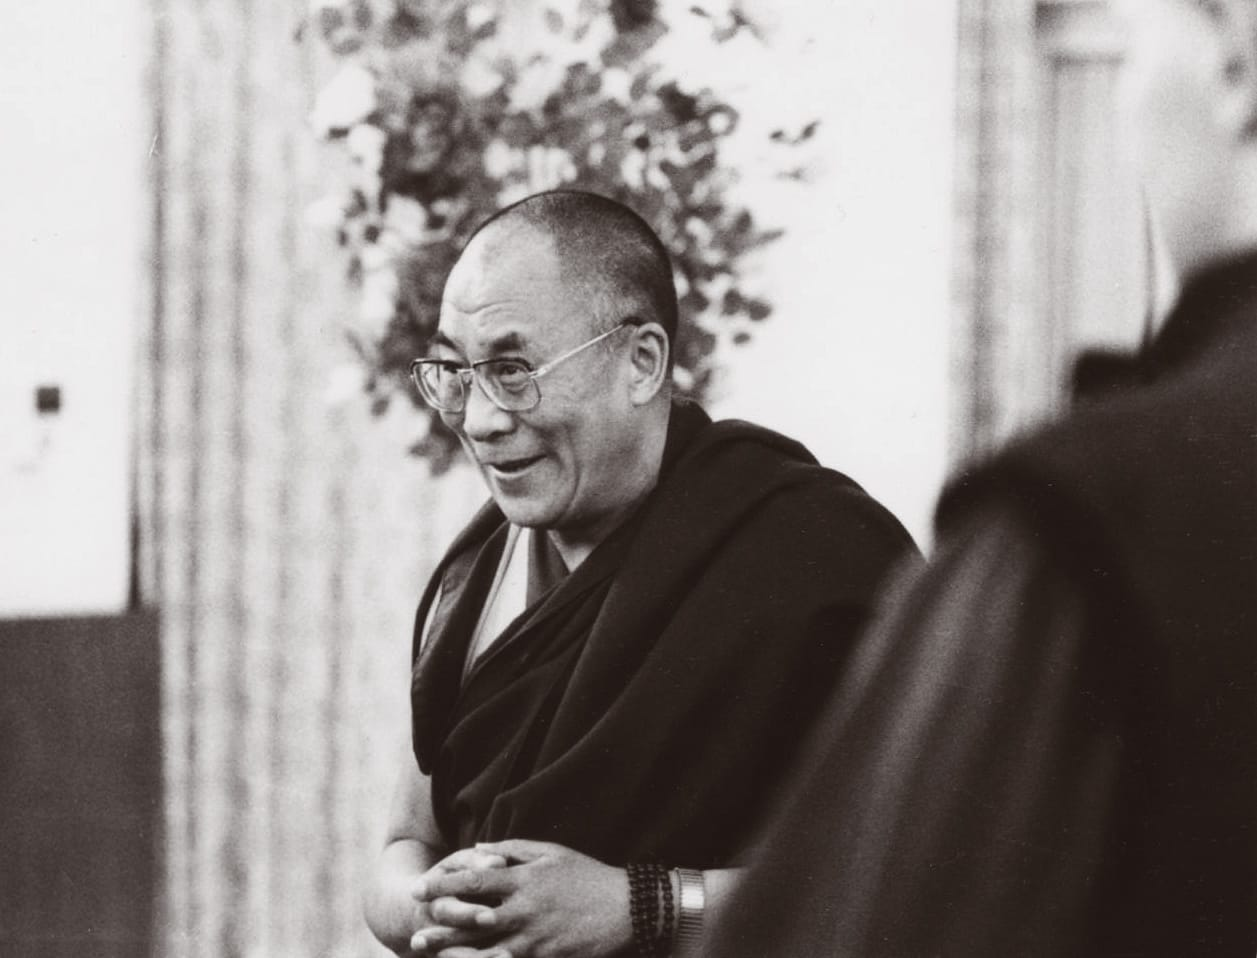 Dalai Lama, Melvin McLeod, Shambhala Sun, Karmapa, China, Teachers, Lion's Roar, Buddhism